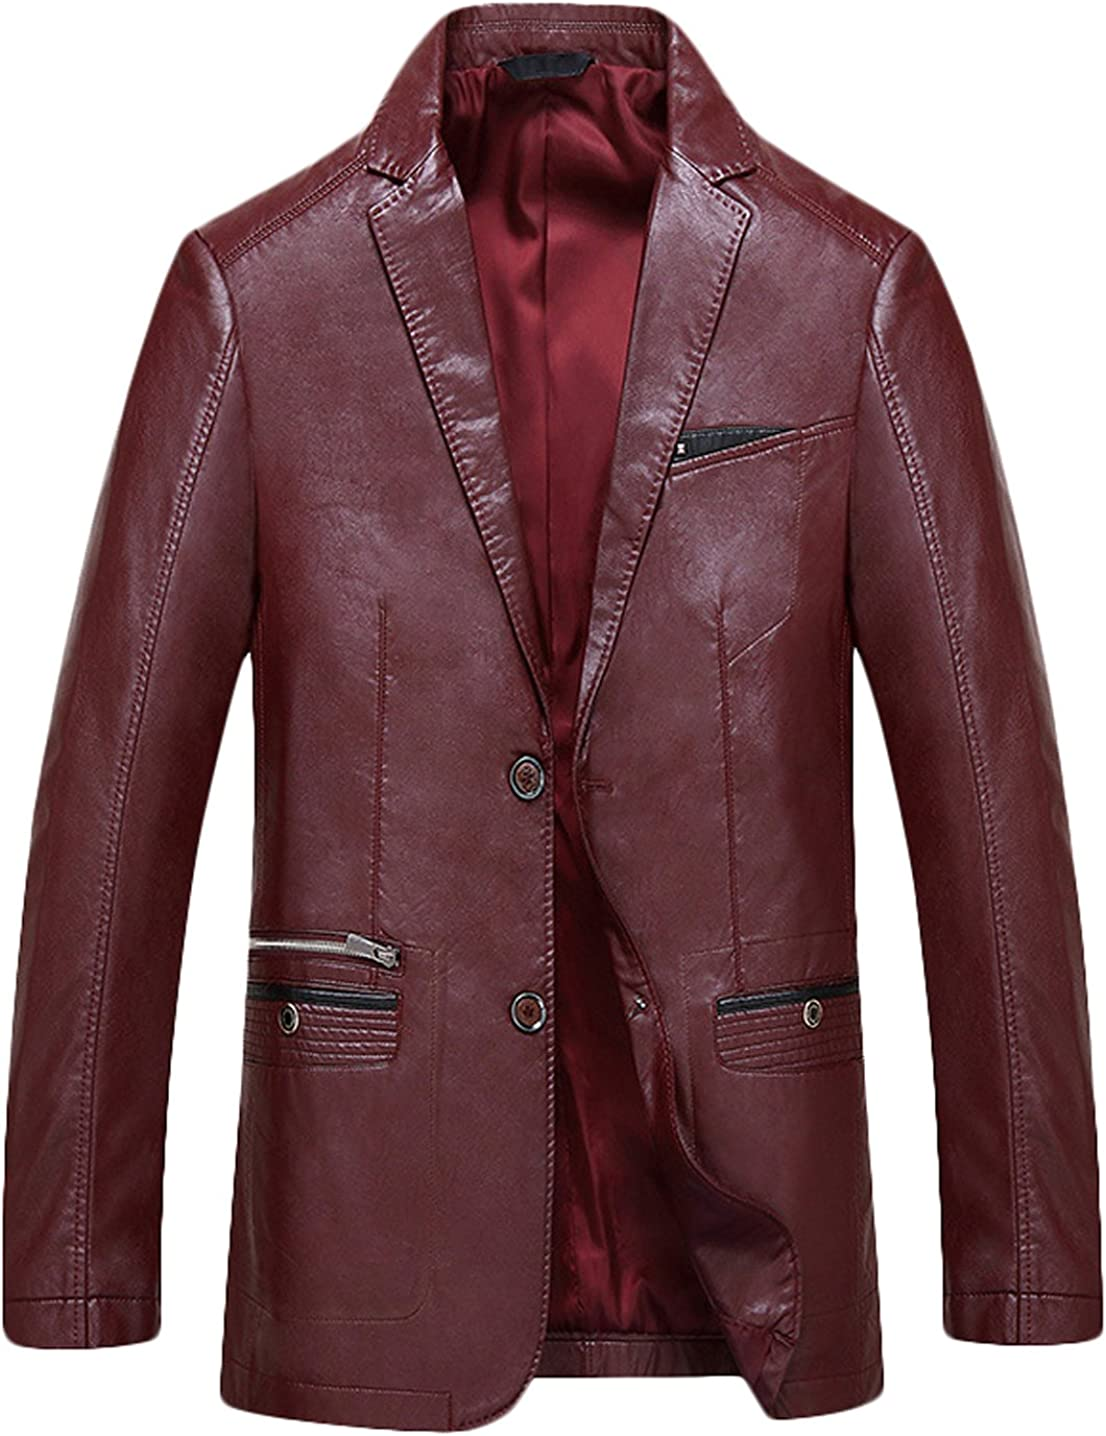 Youhan Mens Slim Two-Button Faux Leather Blazer Suit Jacket